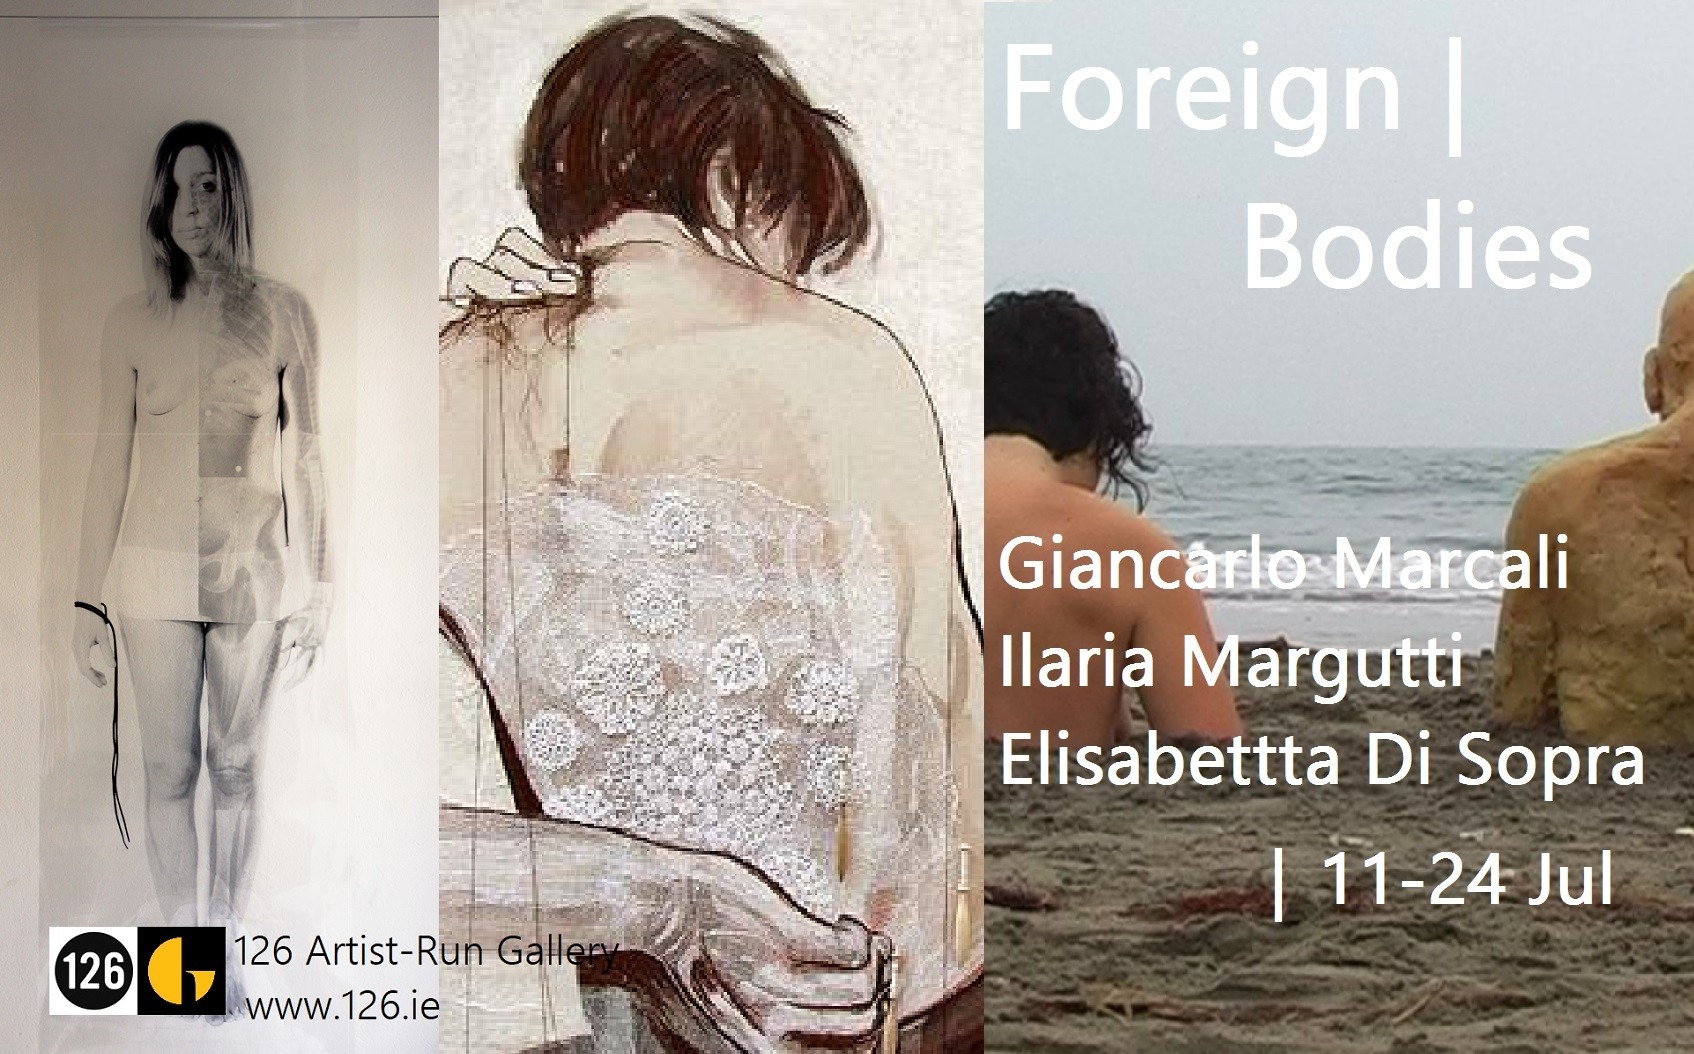 Evening Reception | Foreign Bodies | Thursday 14 July 6pm